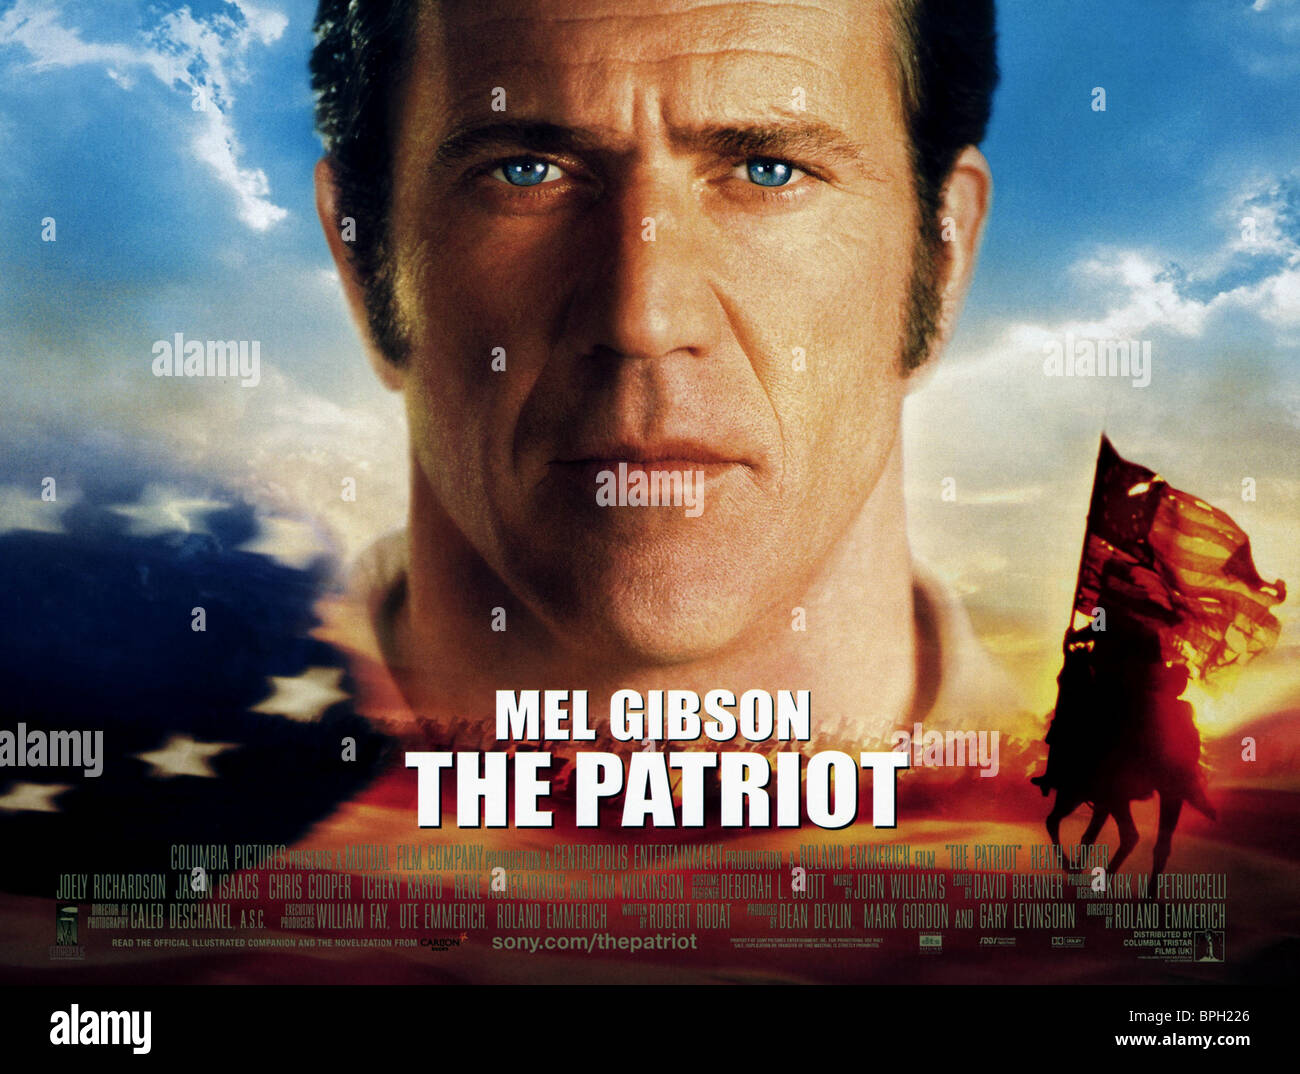 The patriot movie wallpaper